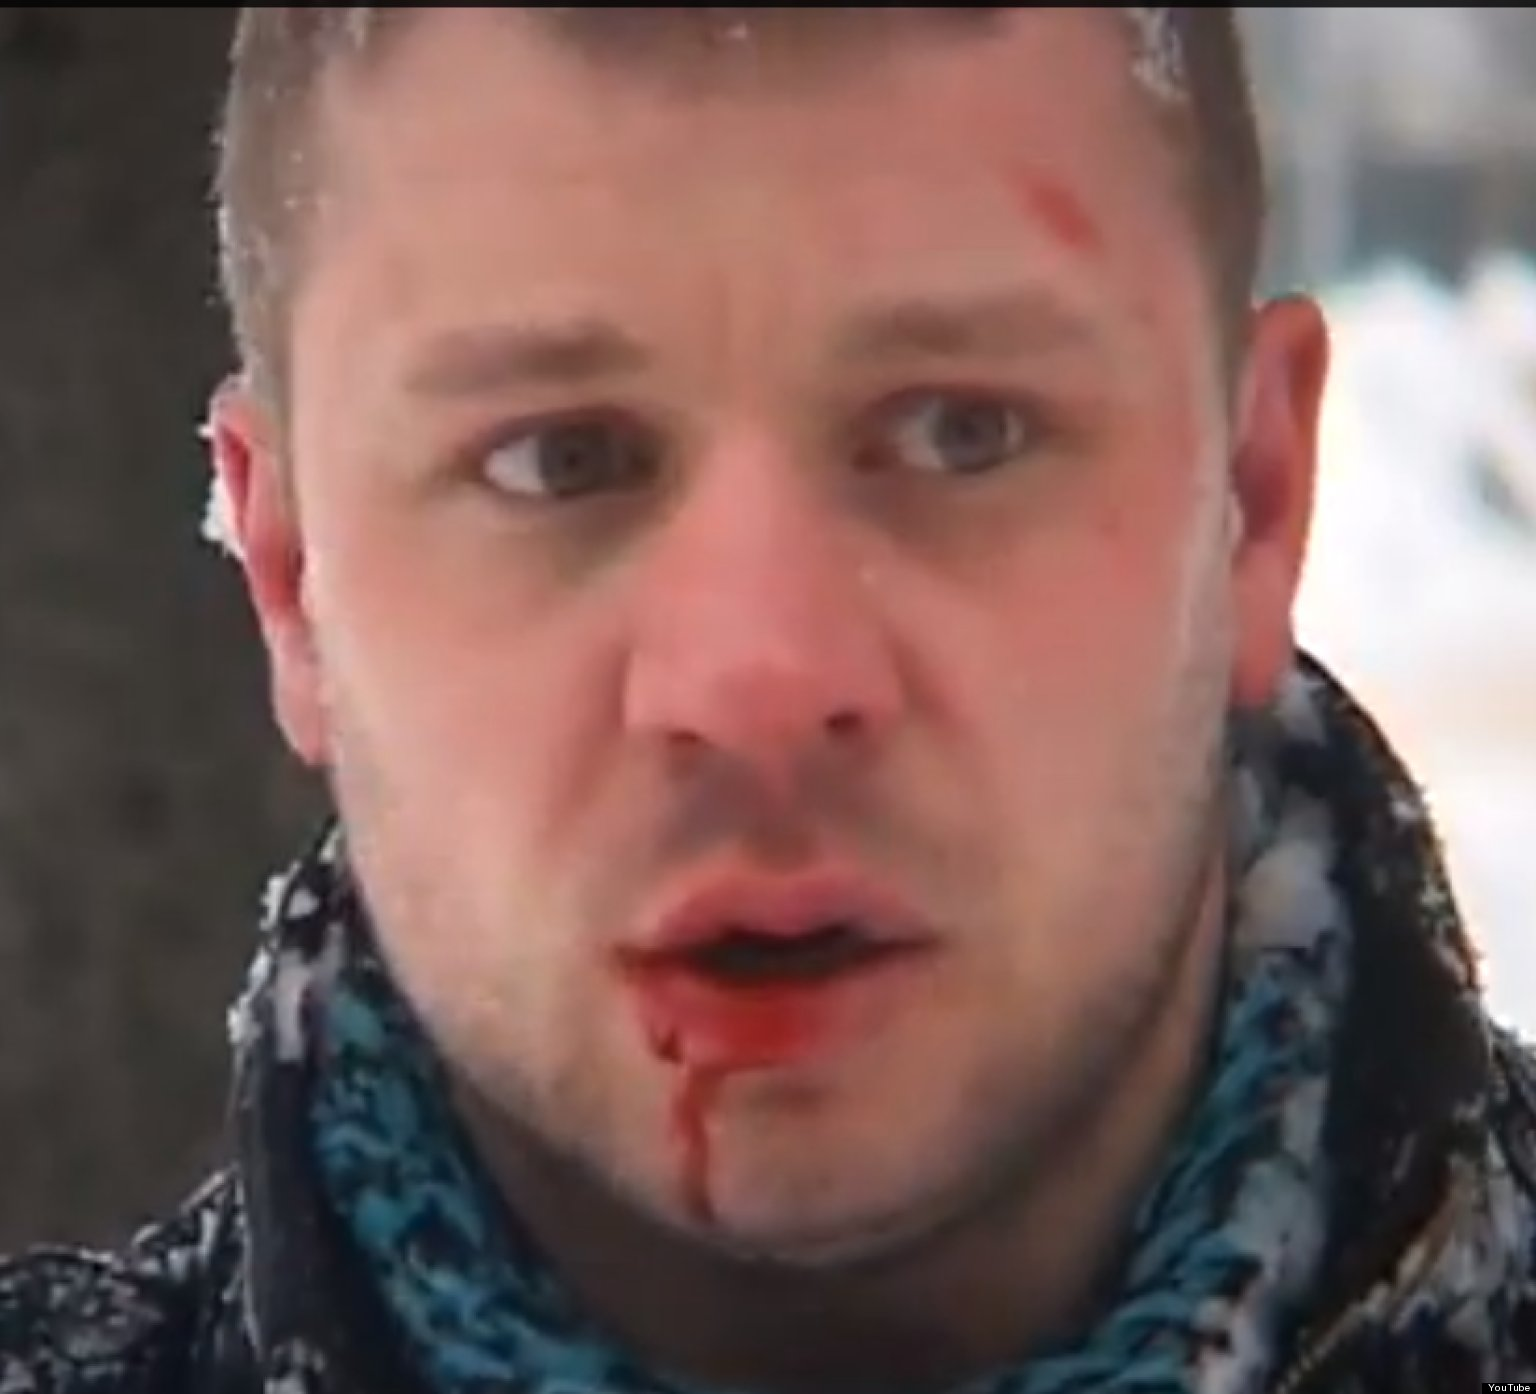 Artem Russia  city images : Artem Kalinin, Russian Gay Activist, Beaten By Local Neo Nazi On ...